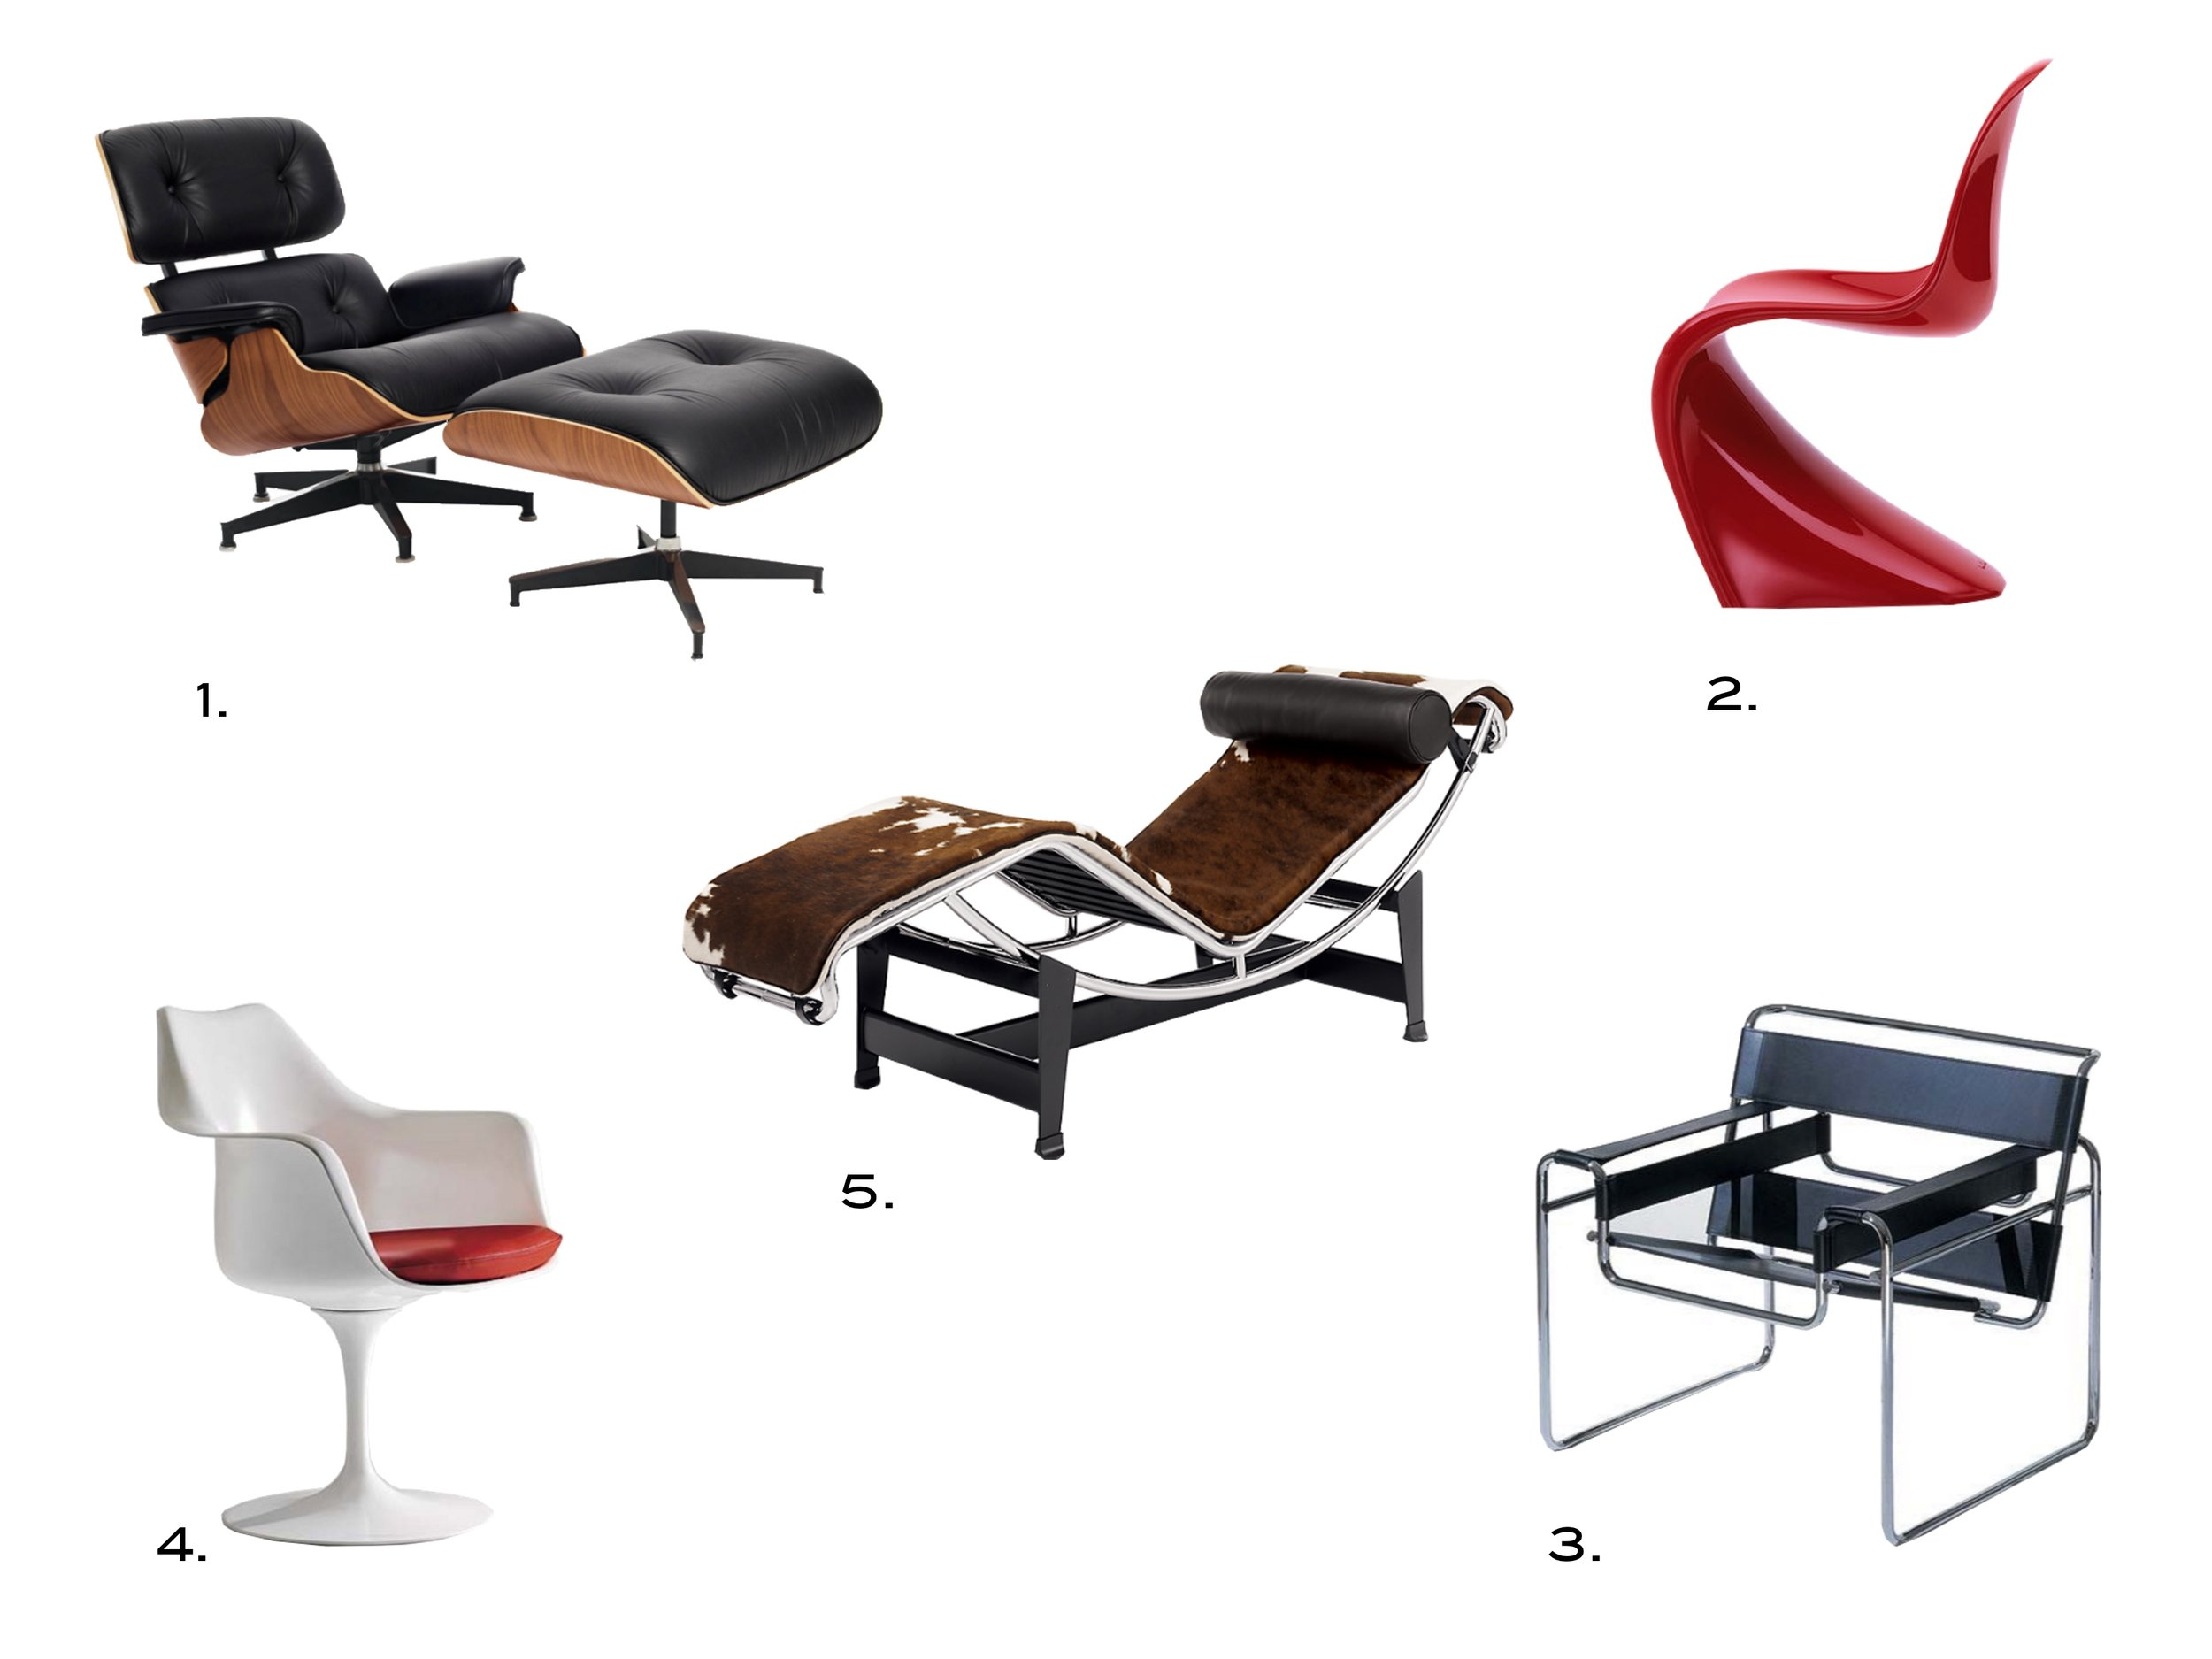 1. Lounge and Ottomon Charles and Ray Eames 2. Panton Classic Chair, Vernor Panton 3. Wassily Chair (1925), Marcel Breuer 4. Tulip Chair,Eero Saarinen  5. Chaise Longue, Le Corbusier, Charlotte Perriand, and Pierre Jeanneret